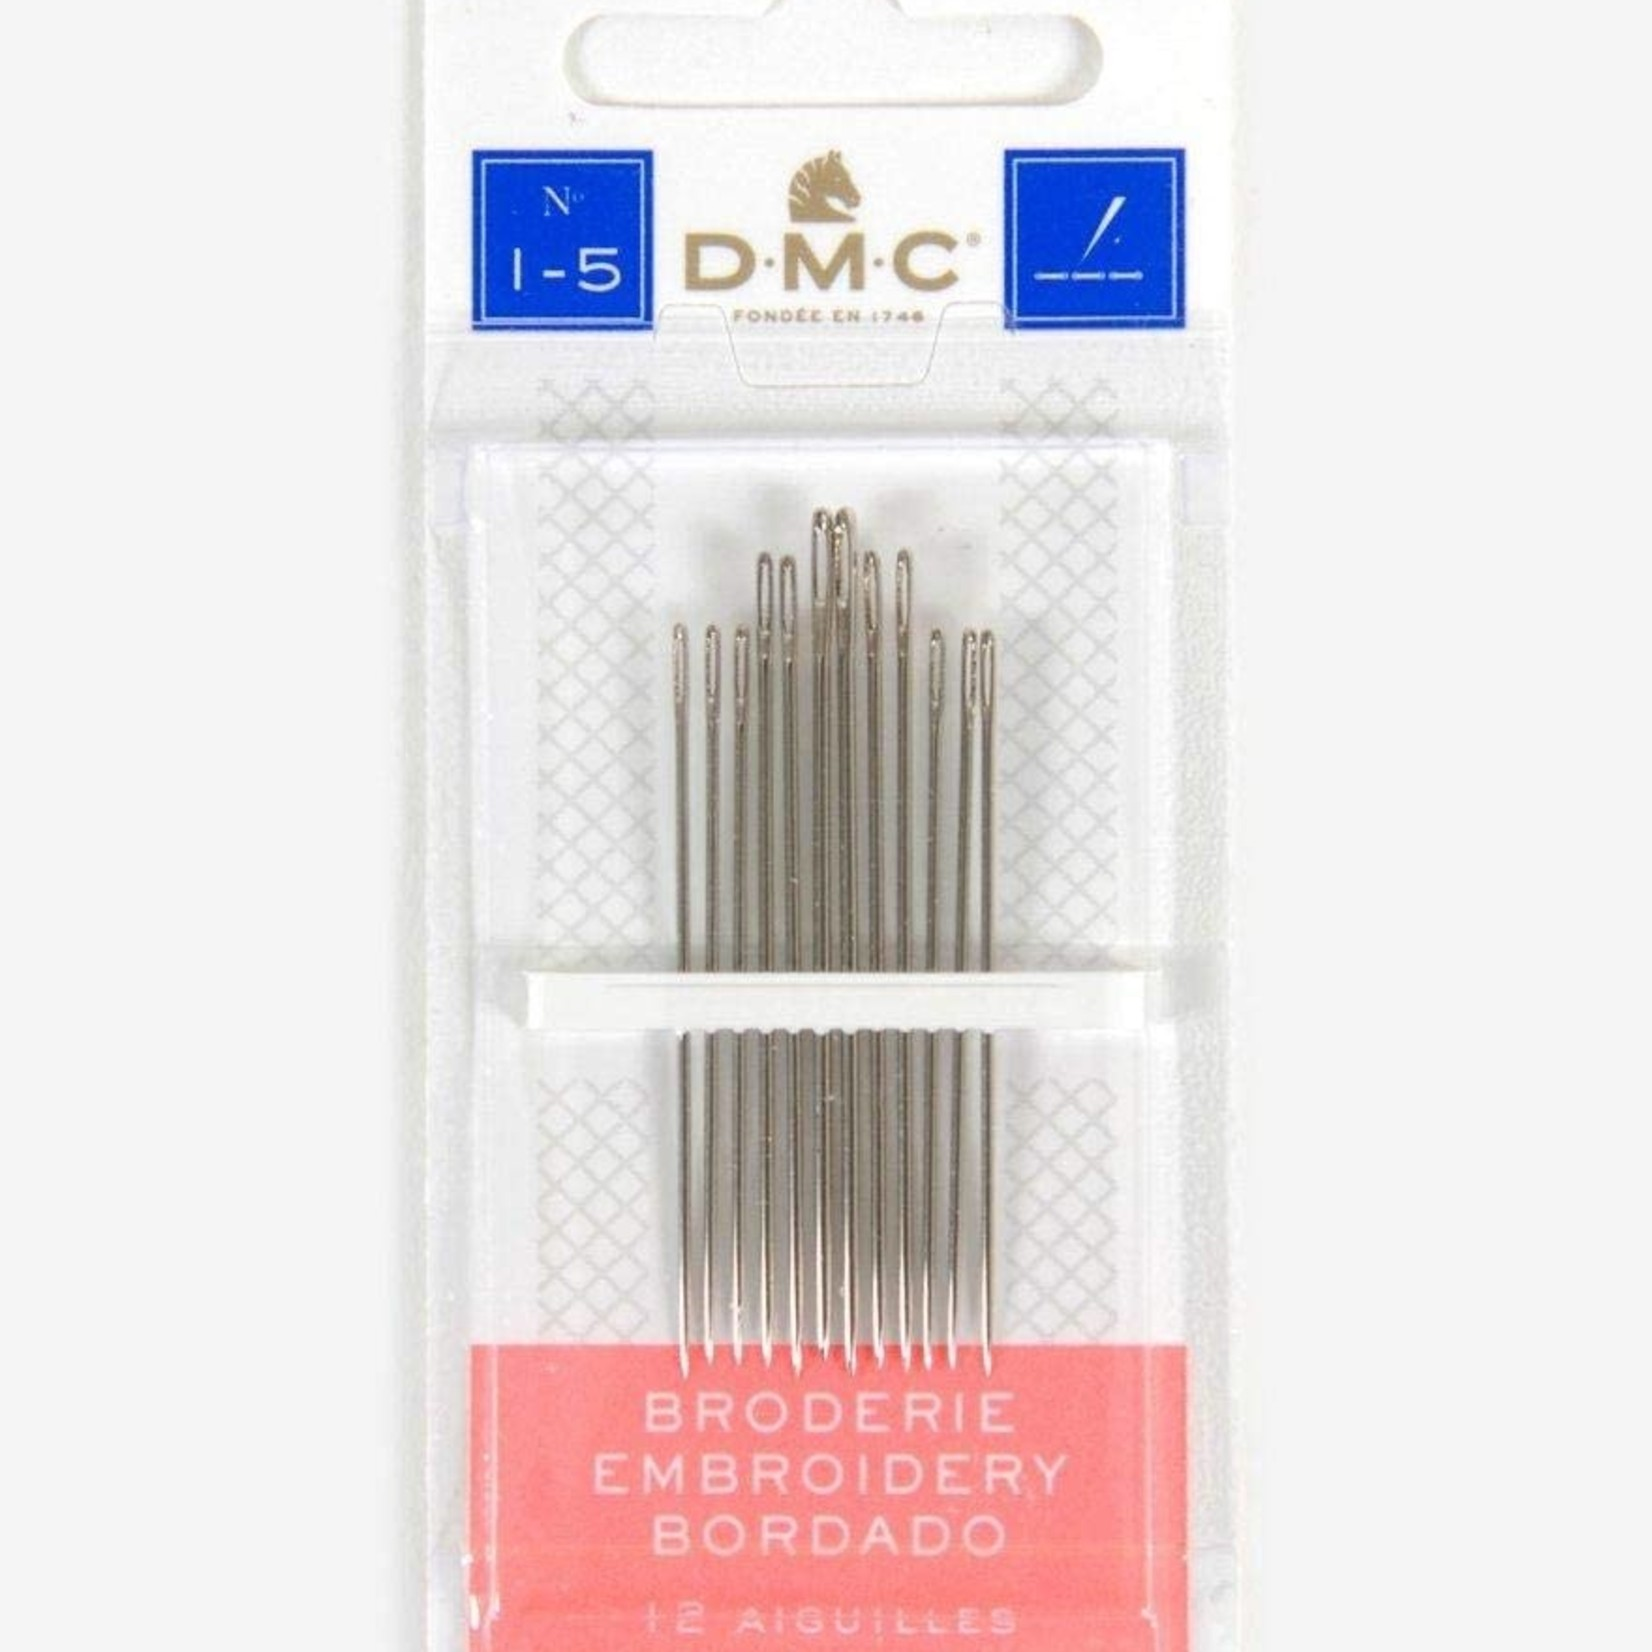 DMC Embroidery Needles (Sizes 3-9)